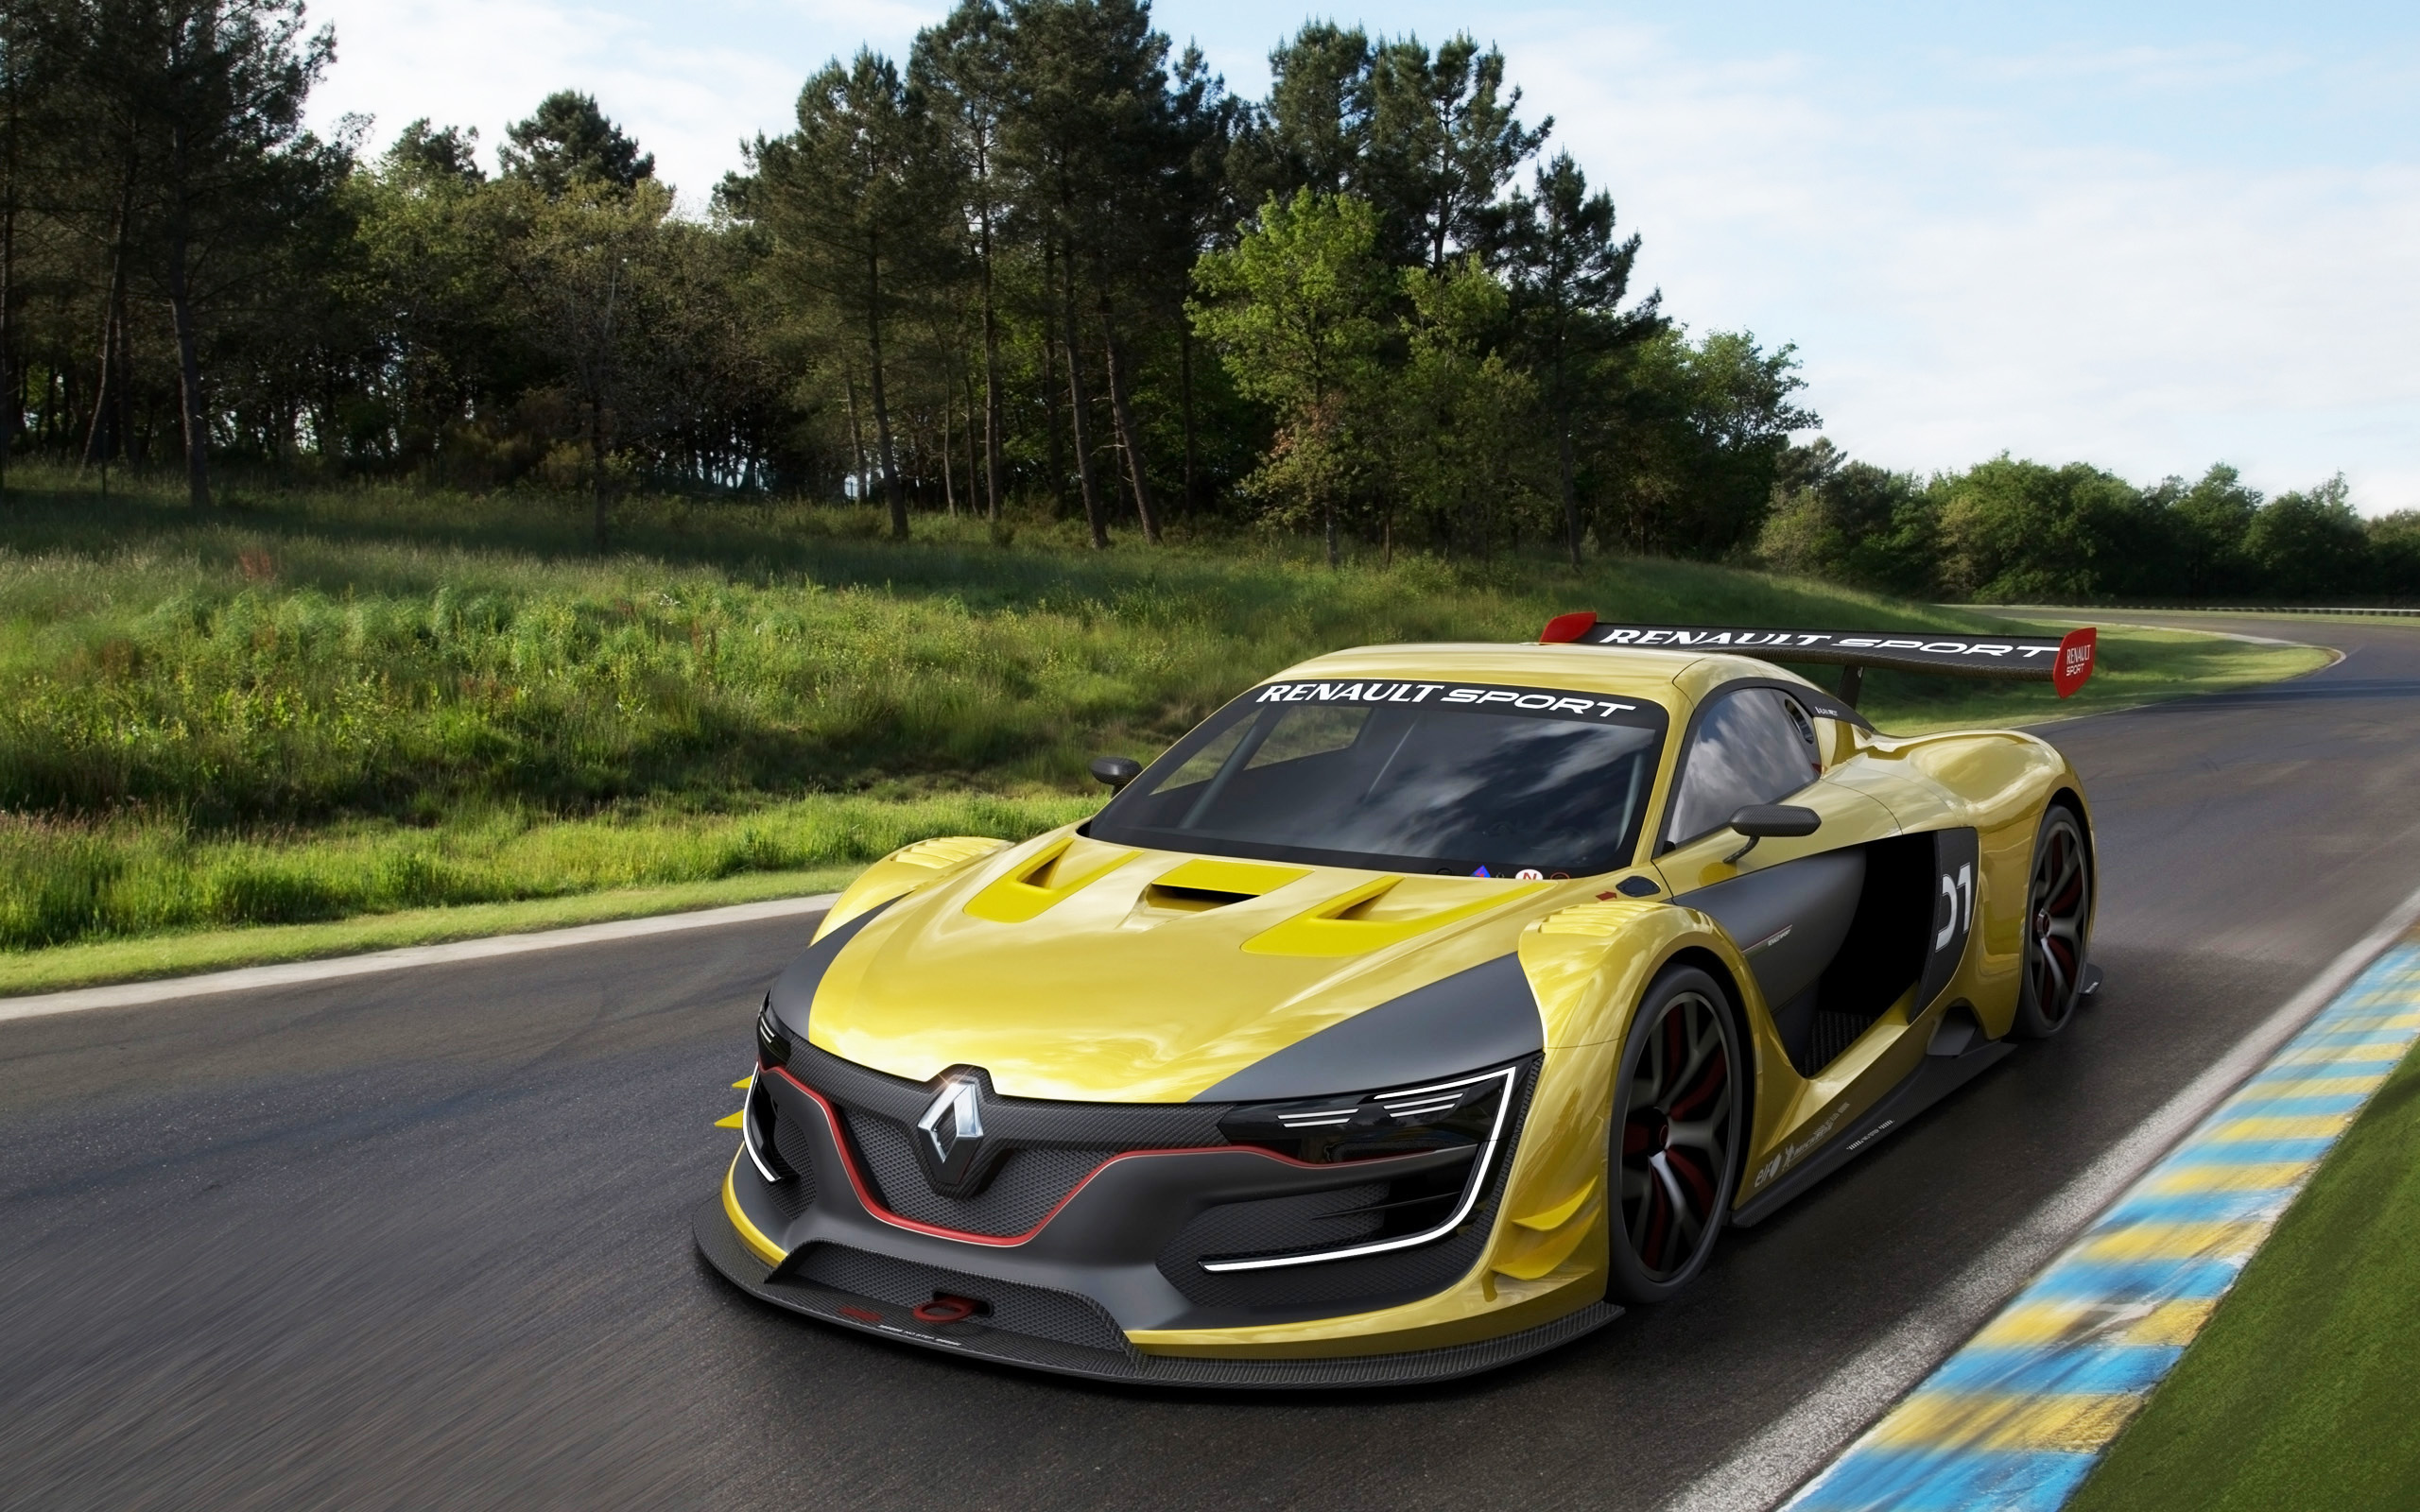 renault sport hd wallpaper background image 2560x1600 id